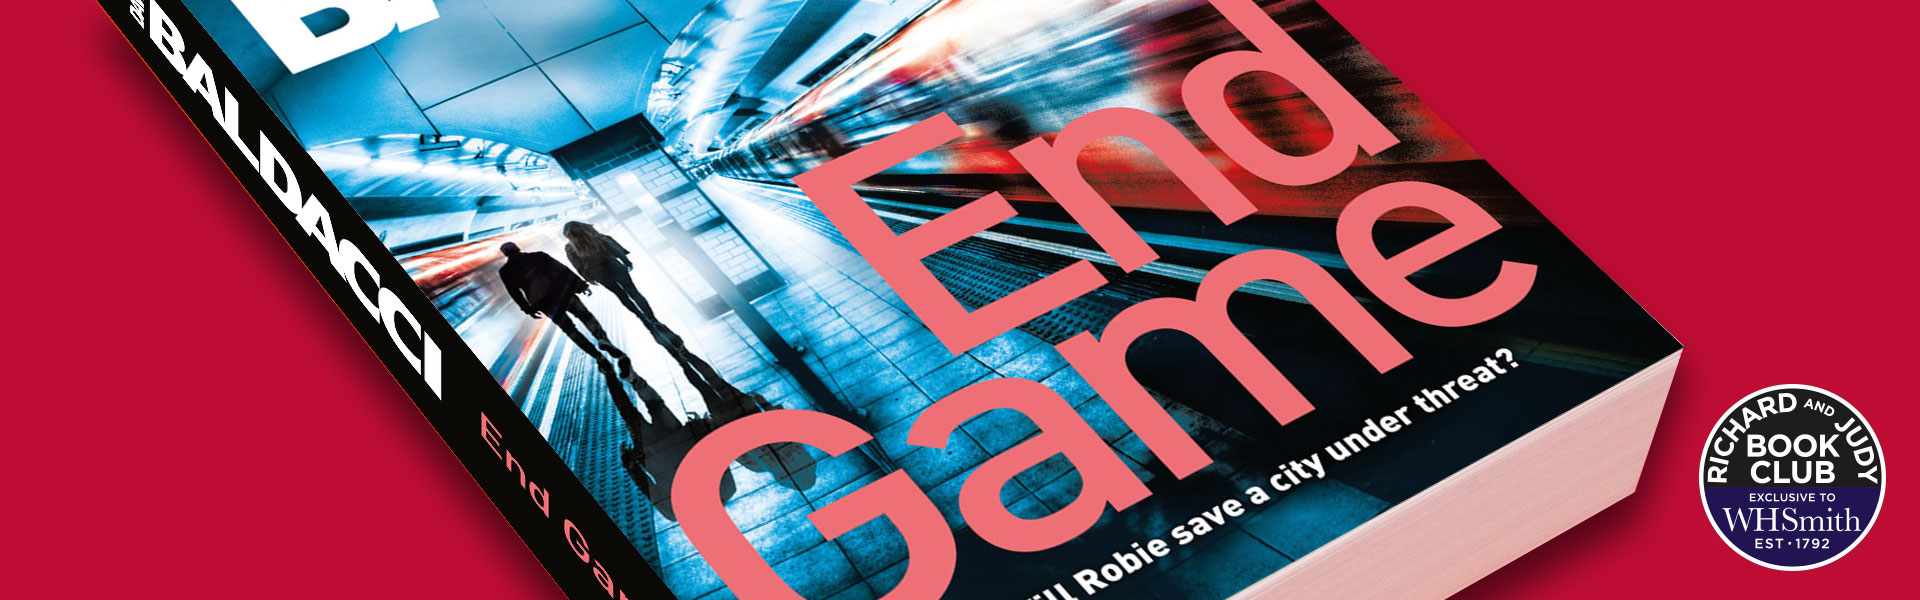 Richard and Judy Introduce End Game By David Baldacci